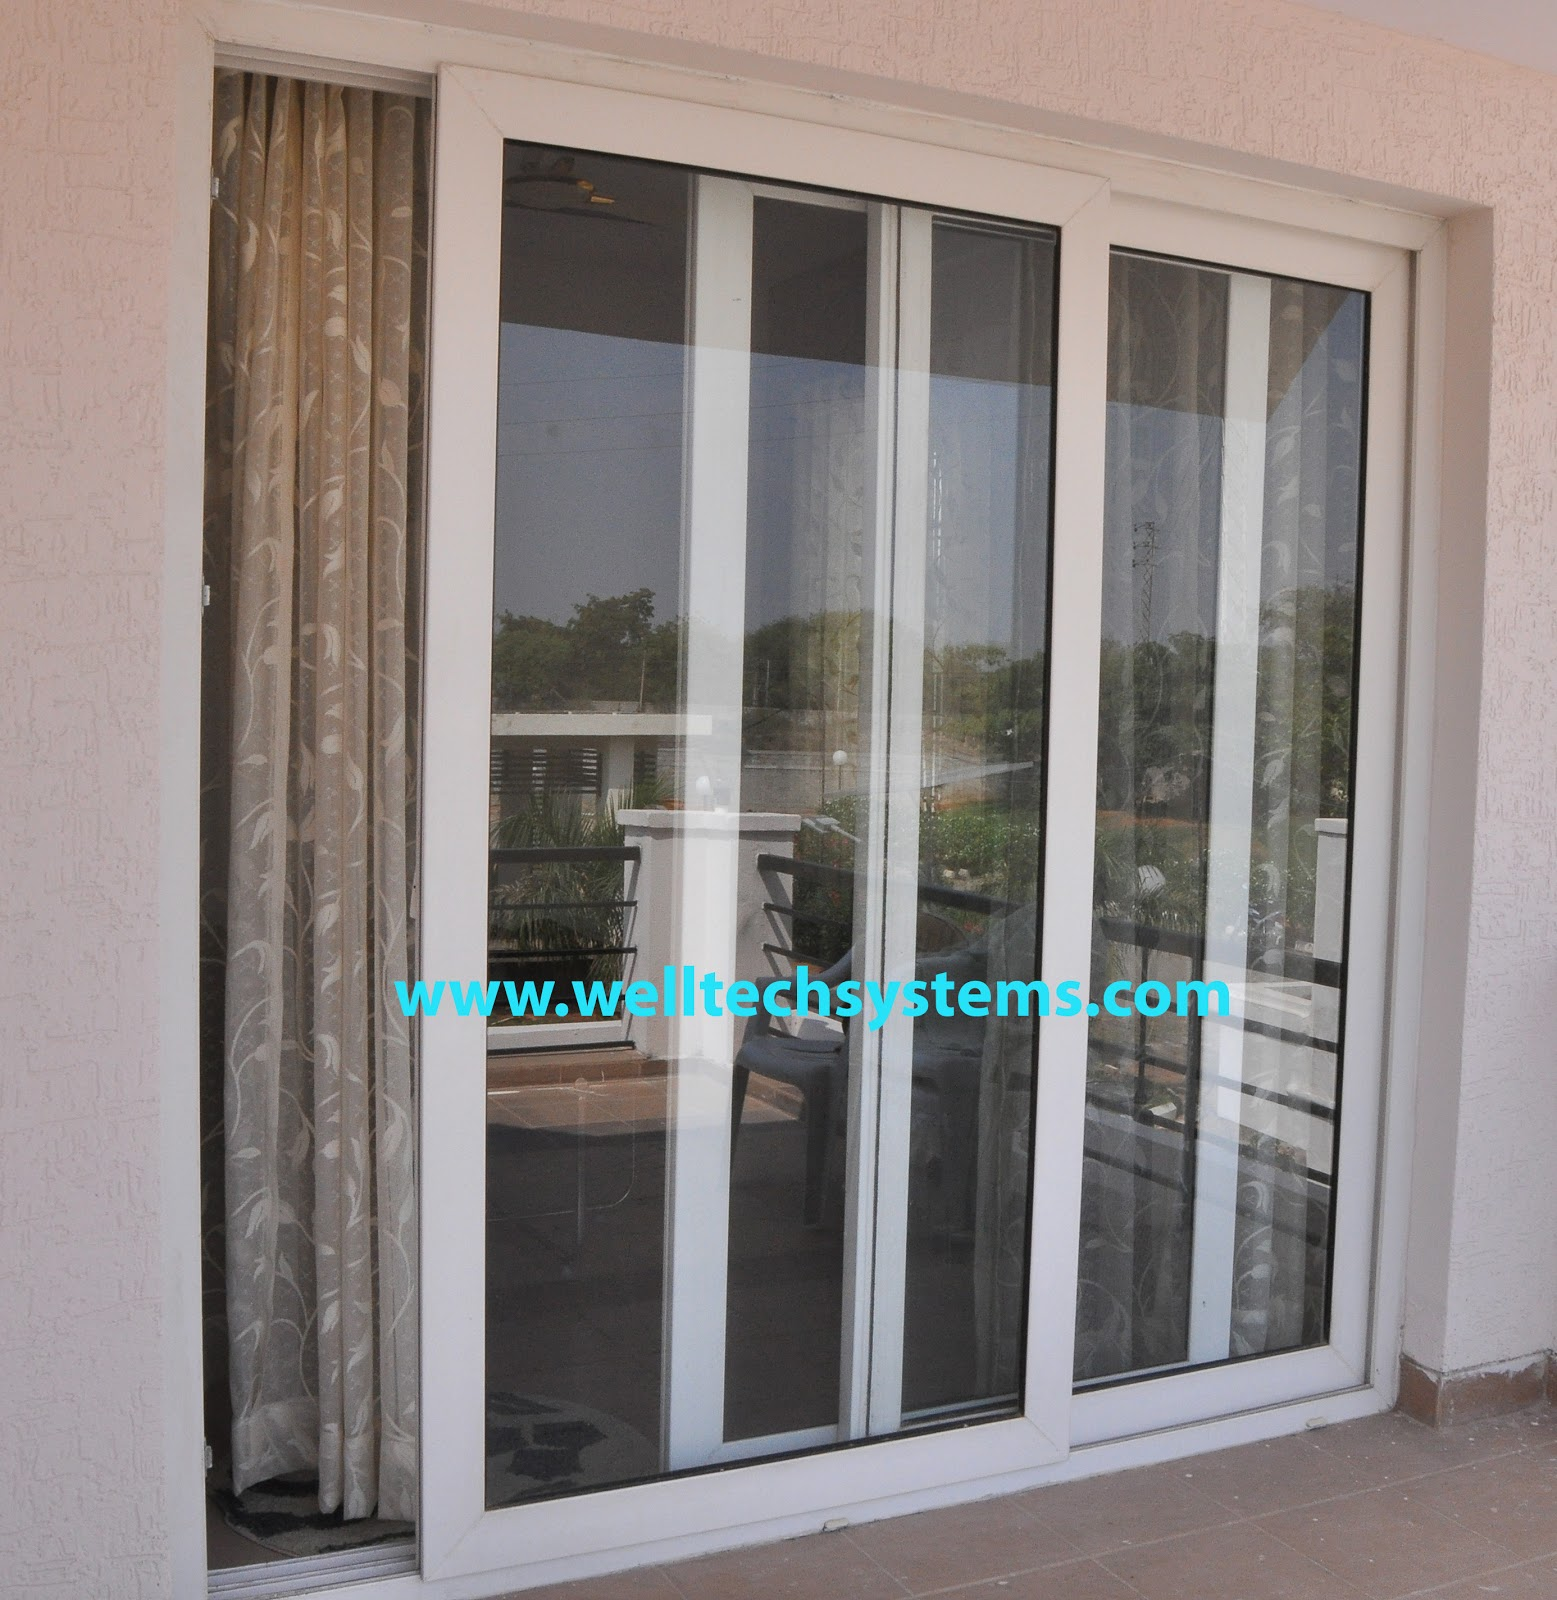 Posted by welltech systems at 04 02 2 comments for Upvc balcony doors